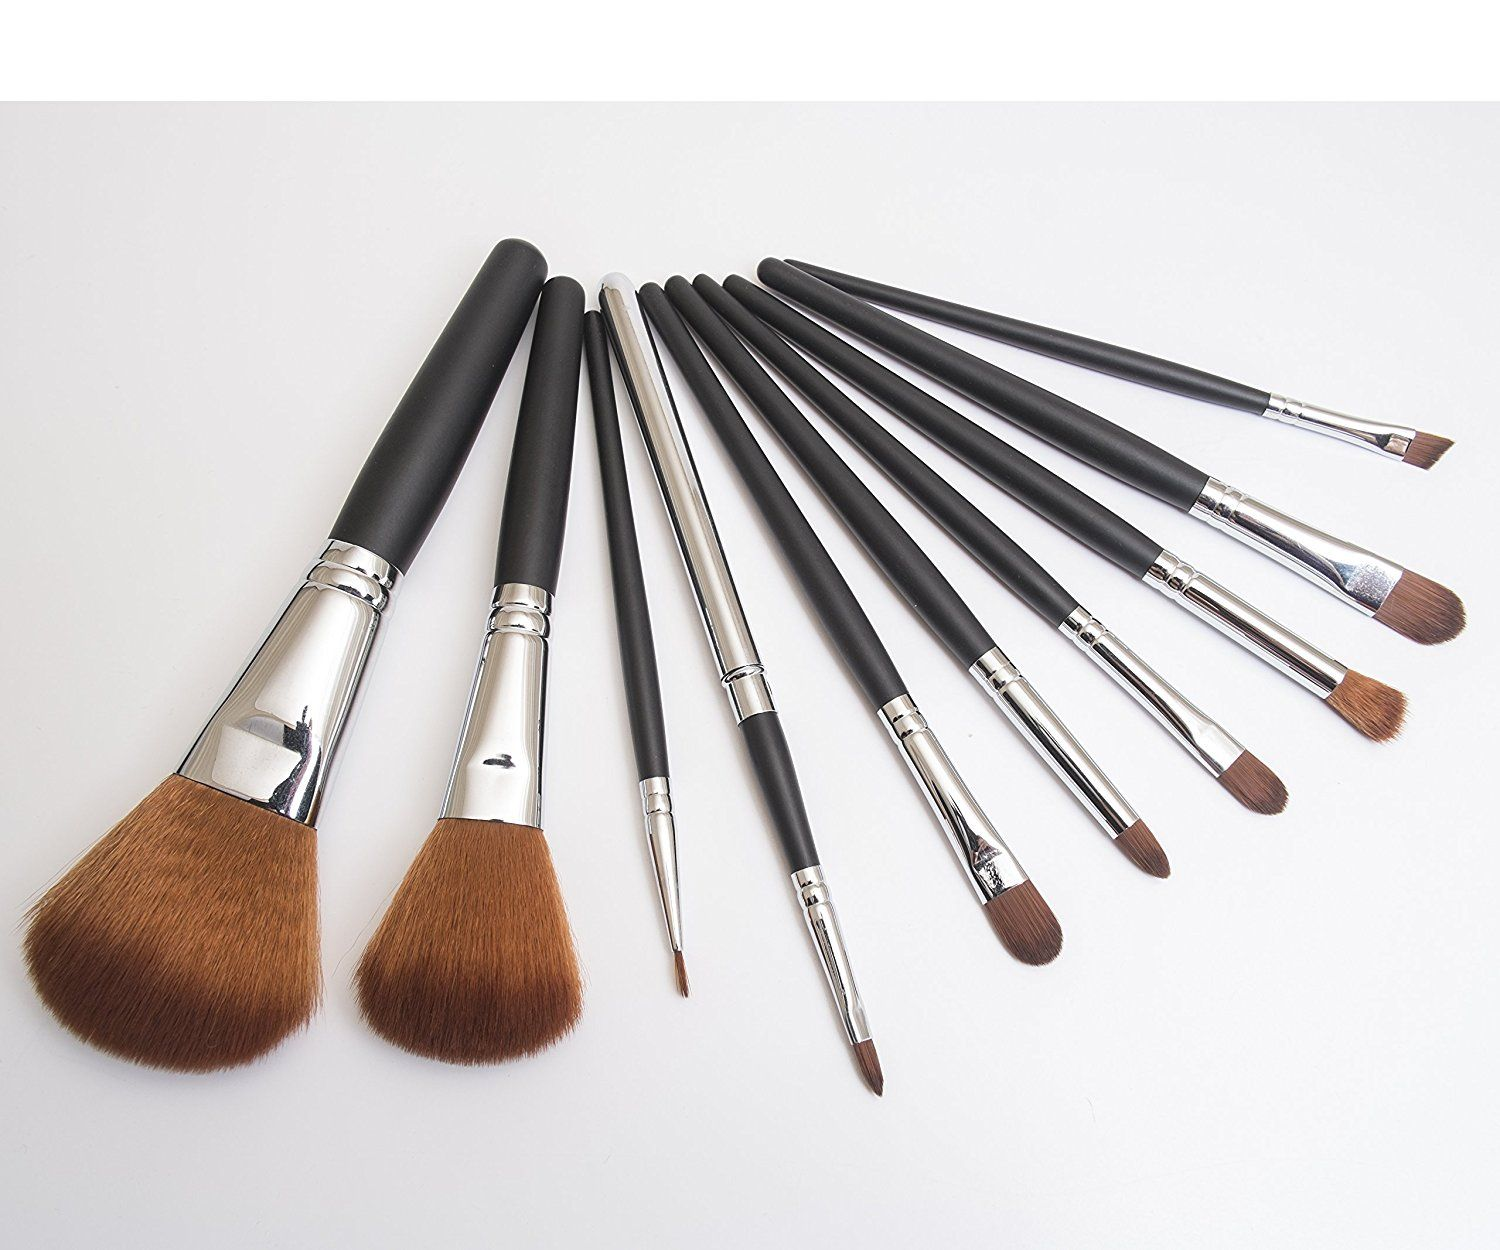 IQ Natural 10pc Professional Makeup Brush Set, Studio